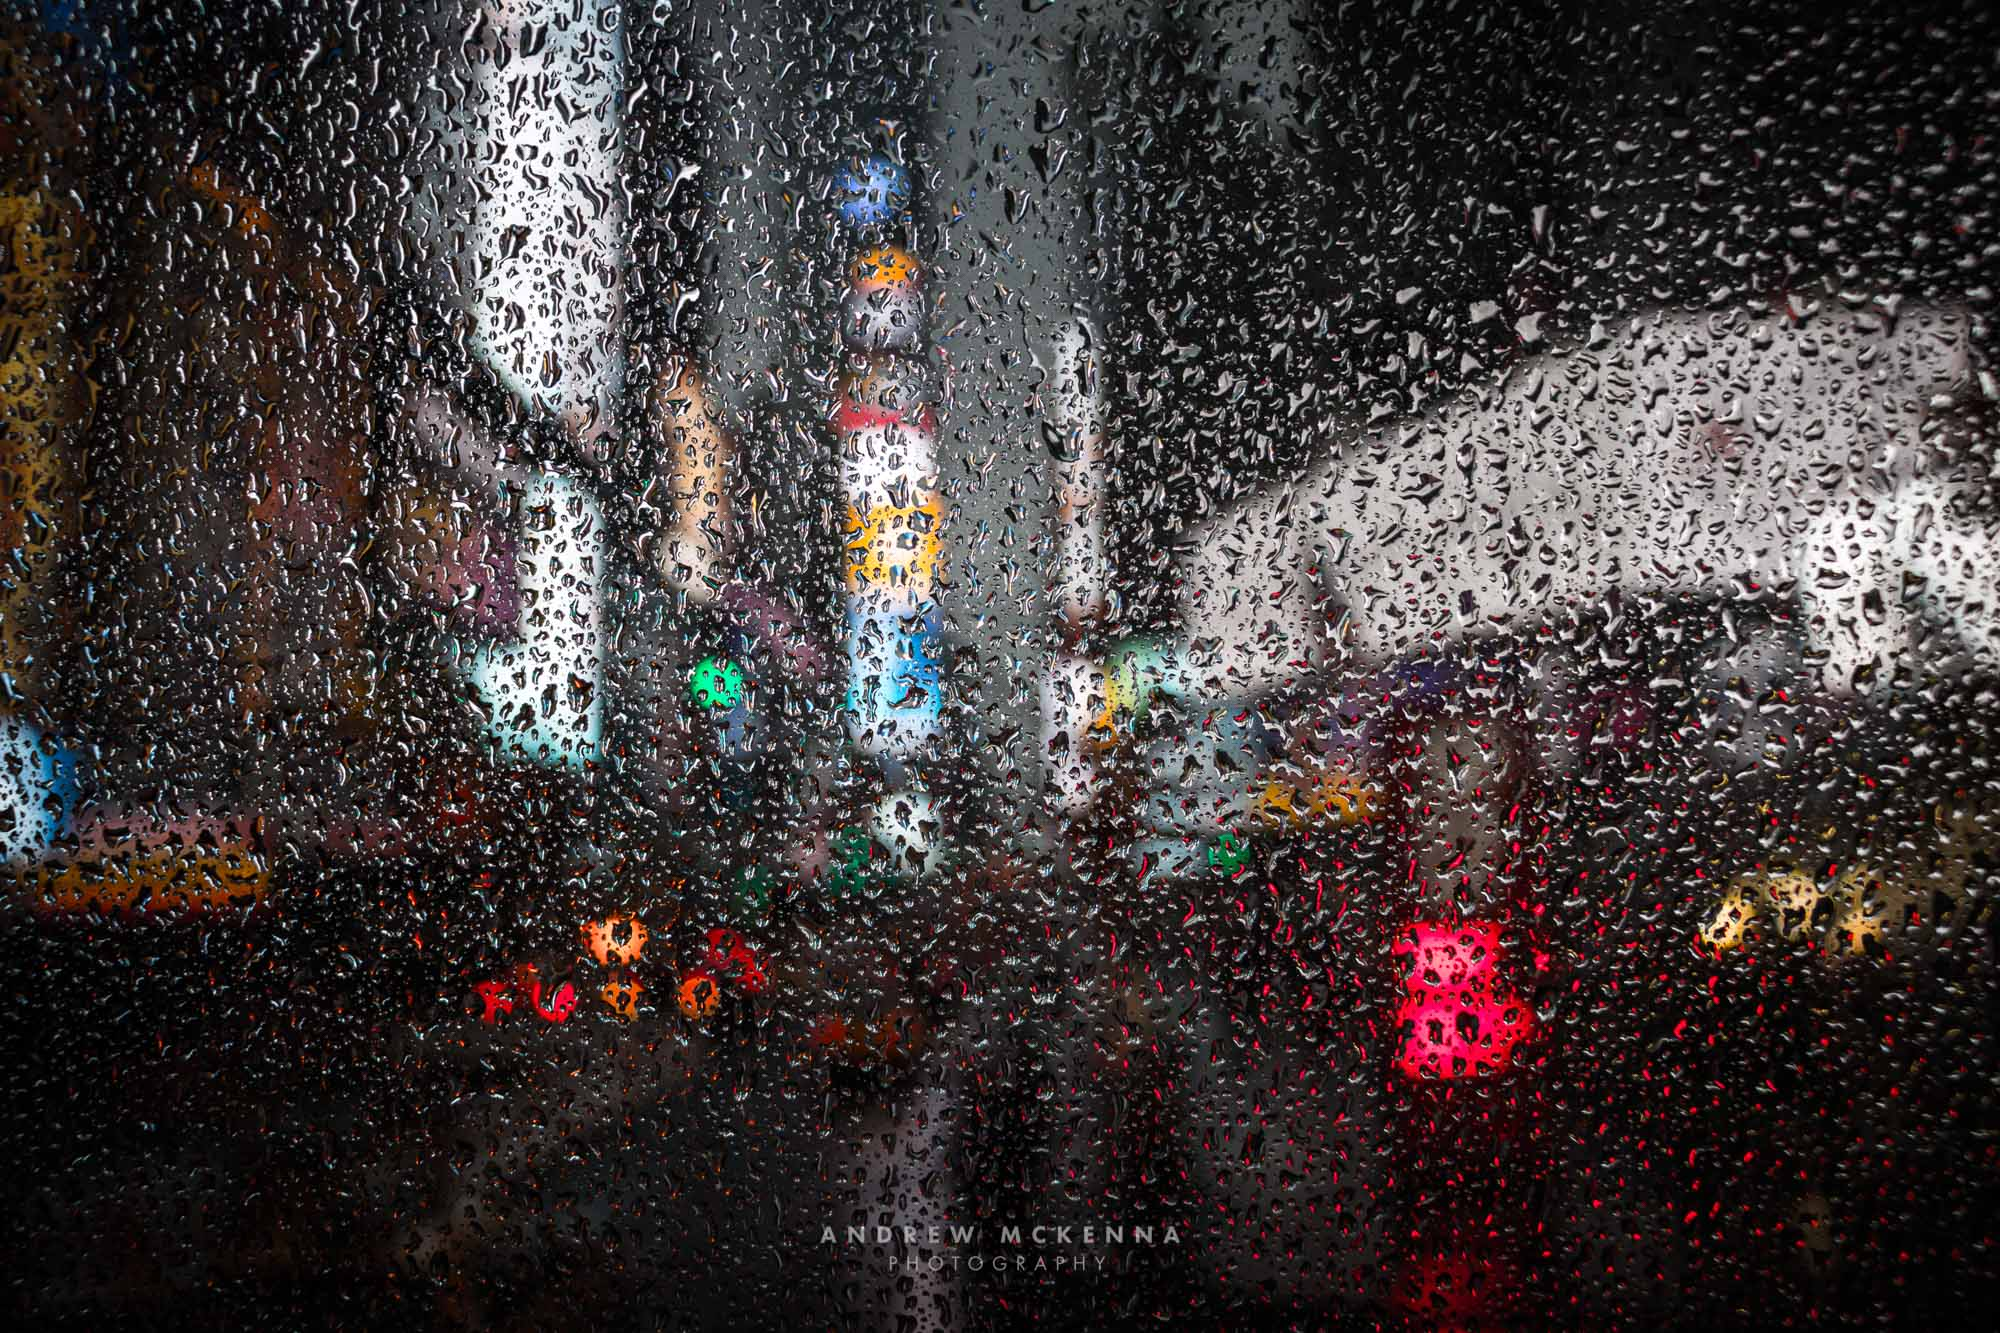 New York NYC Photographer Travel photographer Times square rain